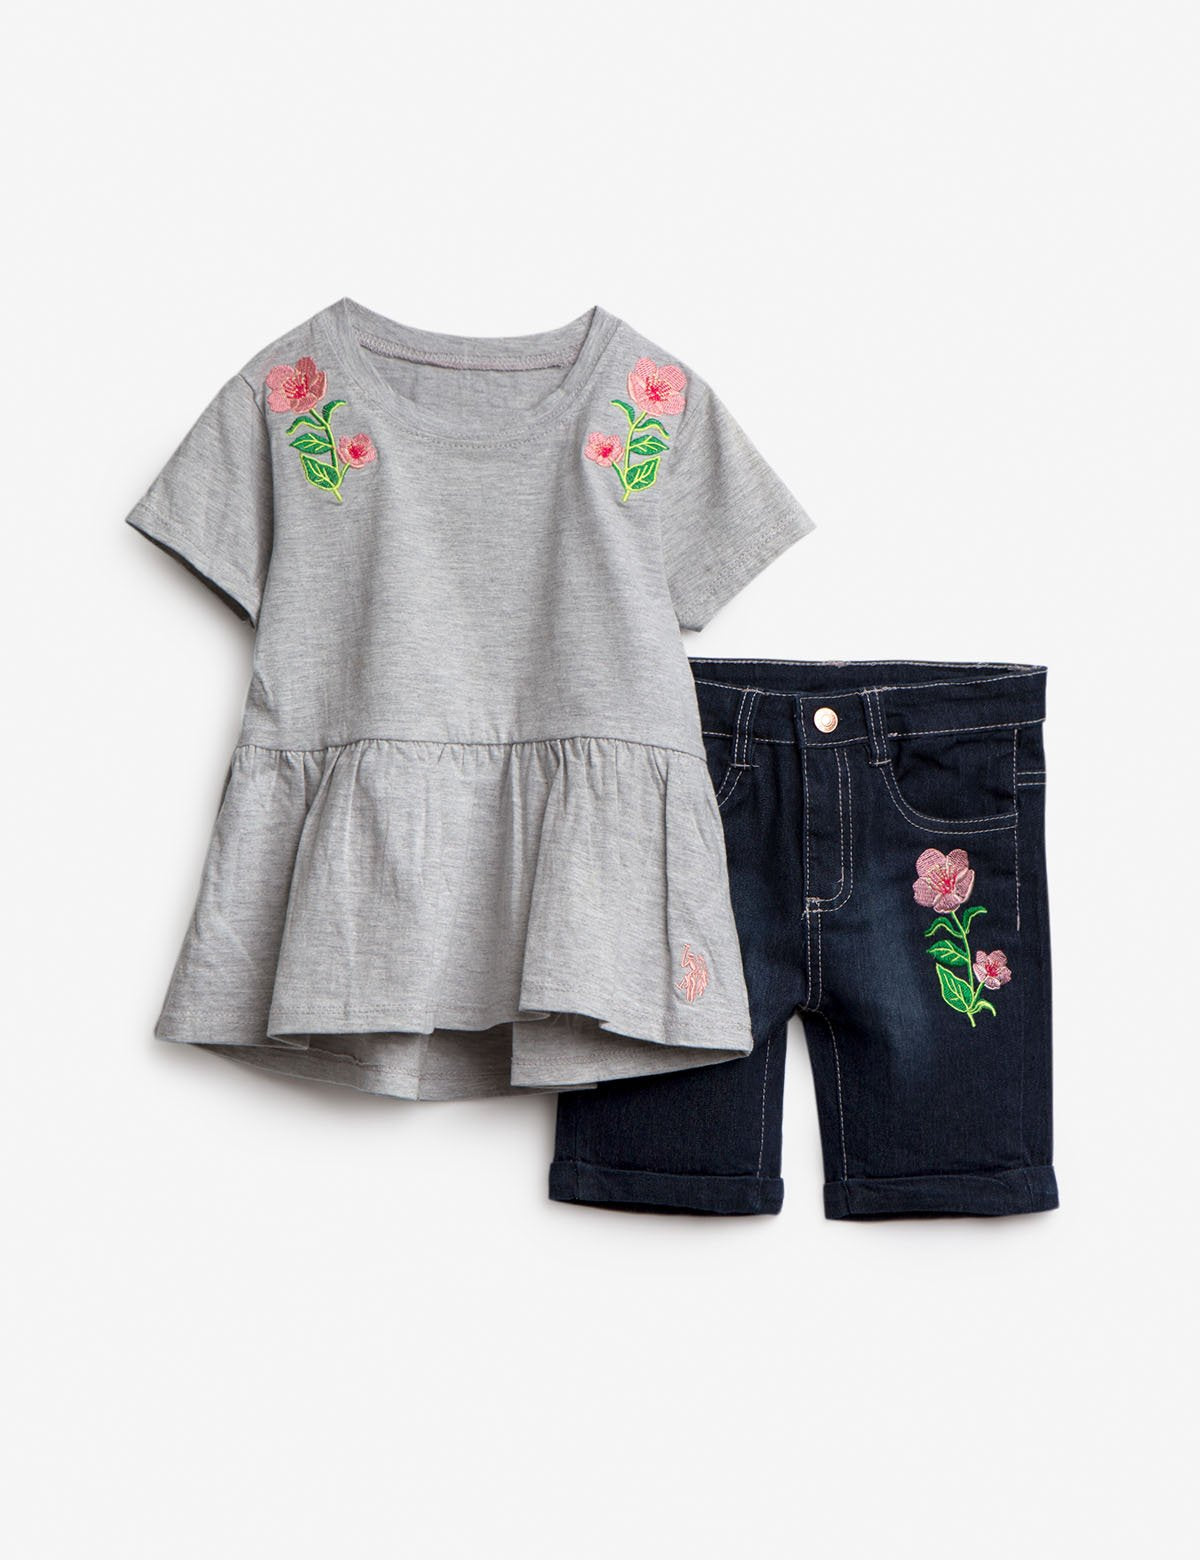 GIRLS 2 PIECE SET: FLORAL TOP & BERMUDA SHORTS